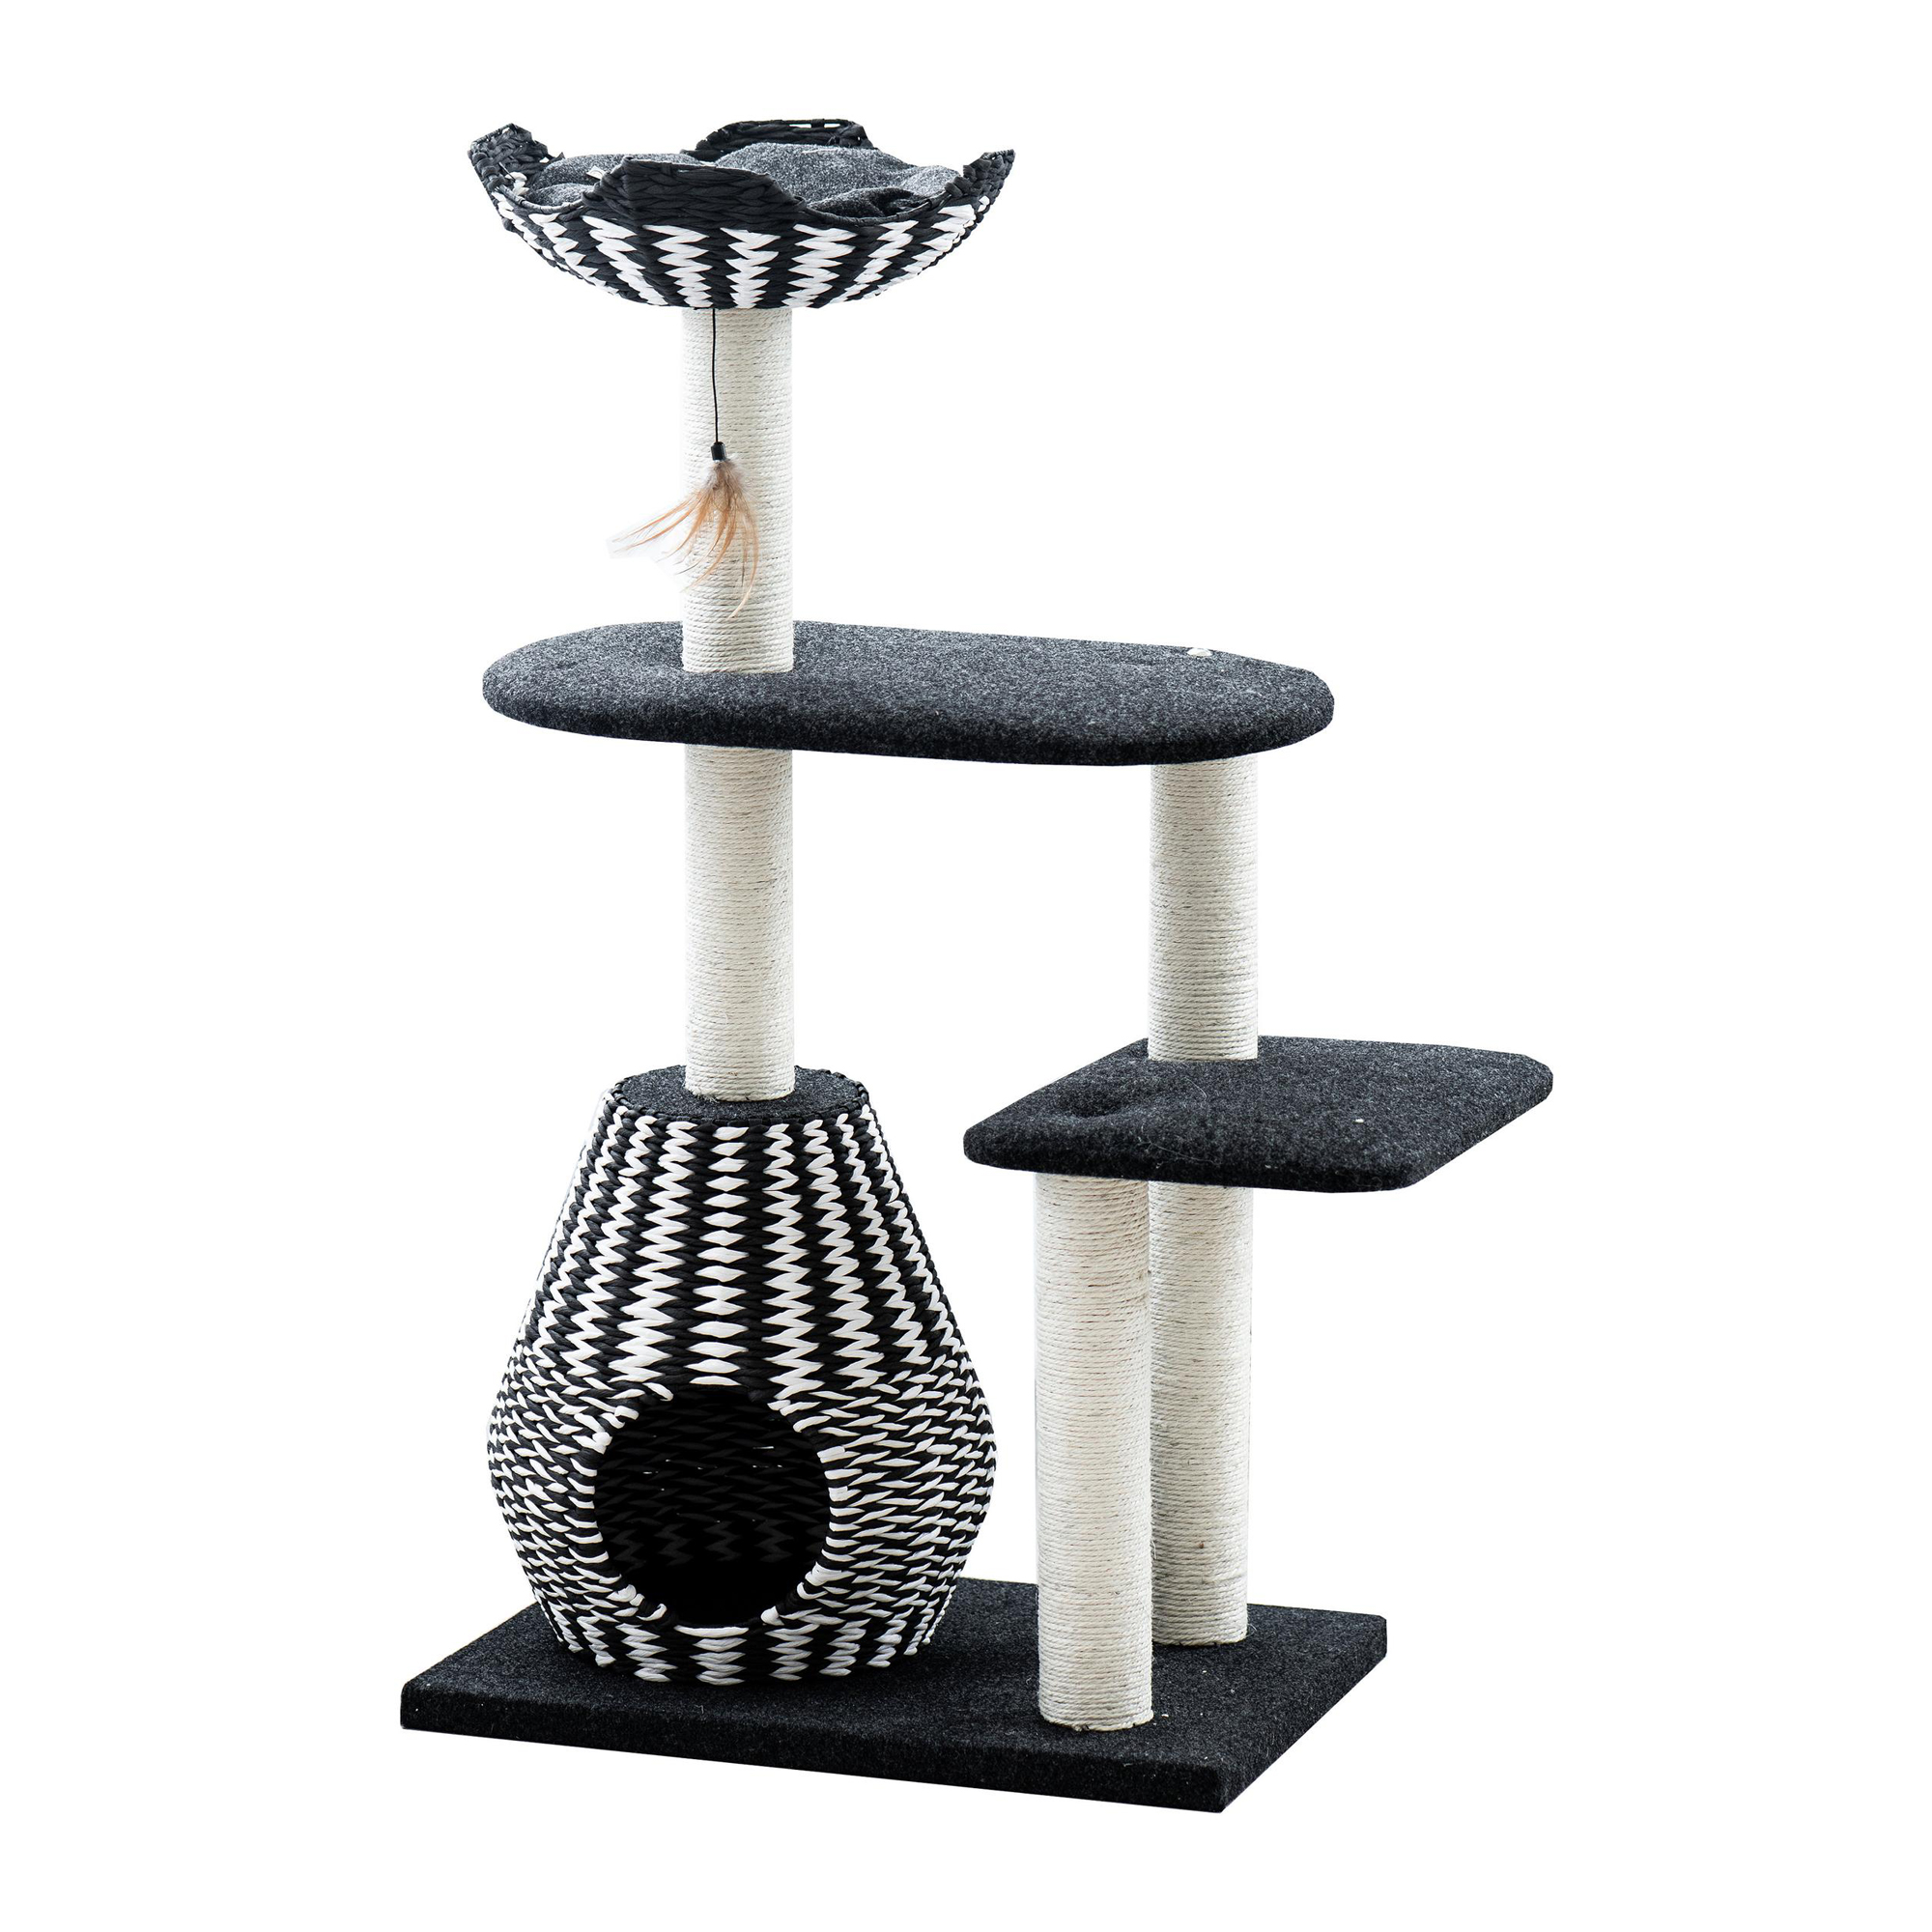 petpals-ace-4-level-cat-tree-with-condo-and-perch